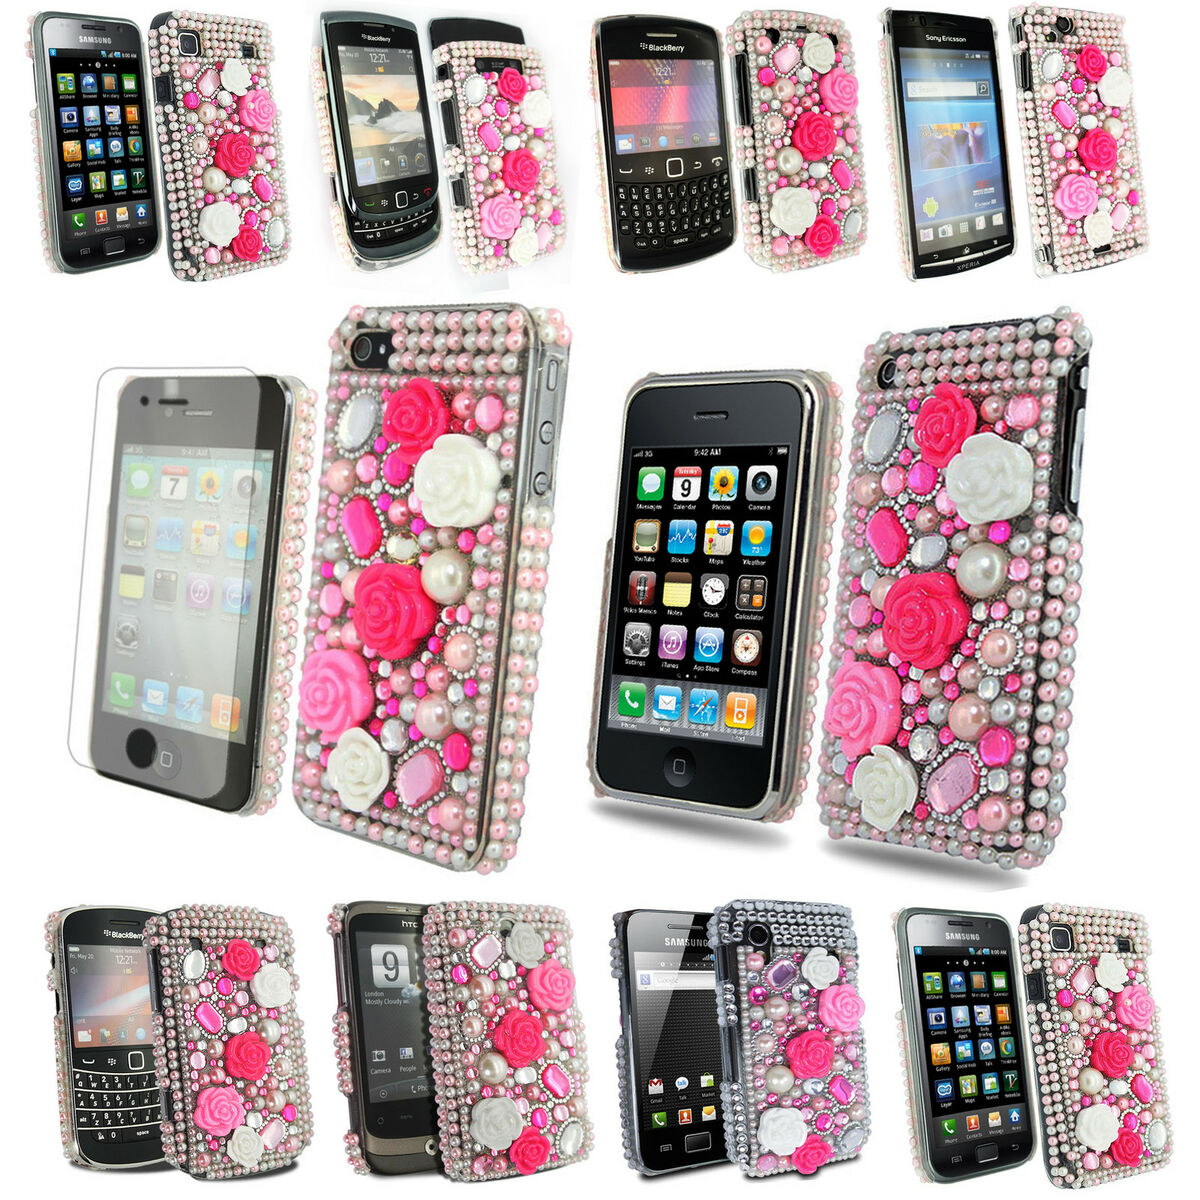 Series Bling Flower Rhinestone Hot Pink Mobile Phone Case Cover